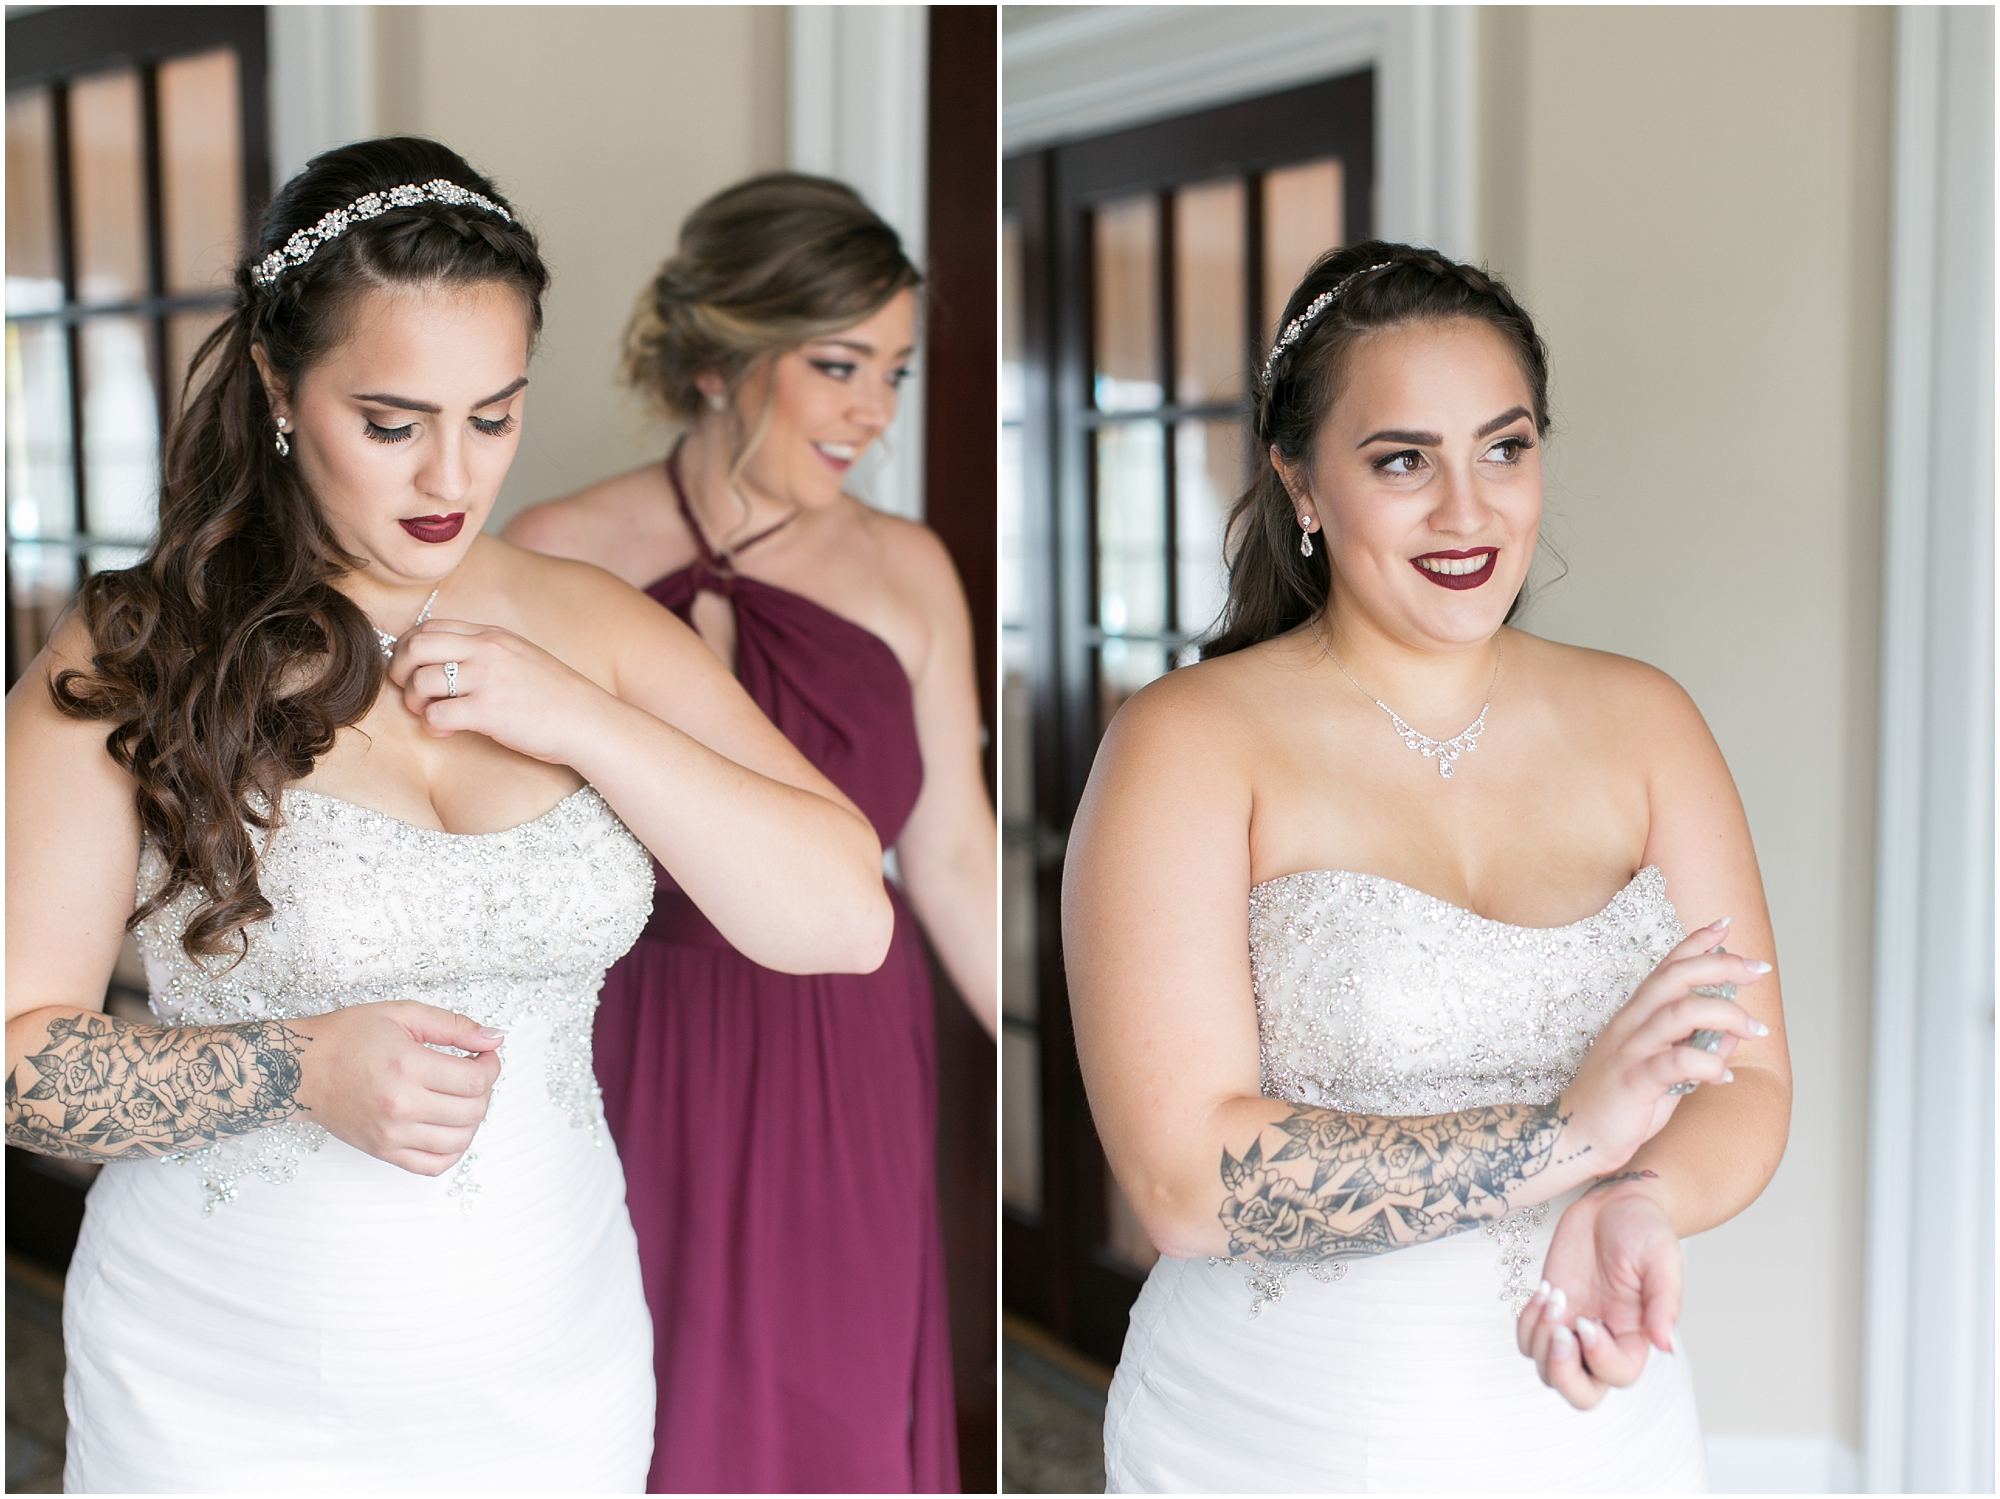 obici house wedding in suffolk virginia, virginia wedding photographer